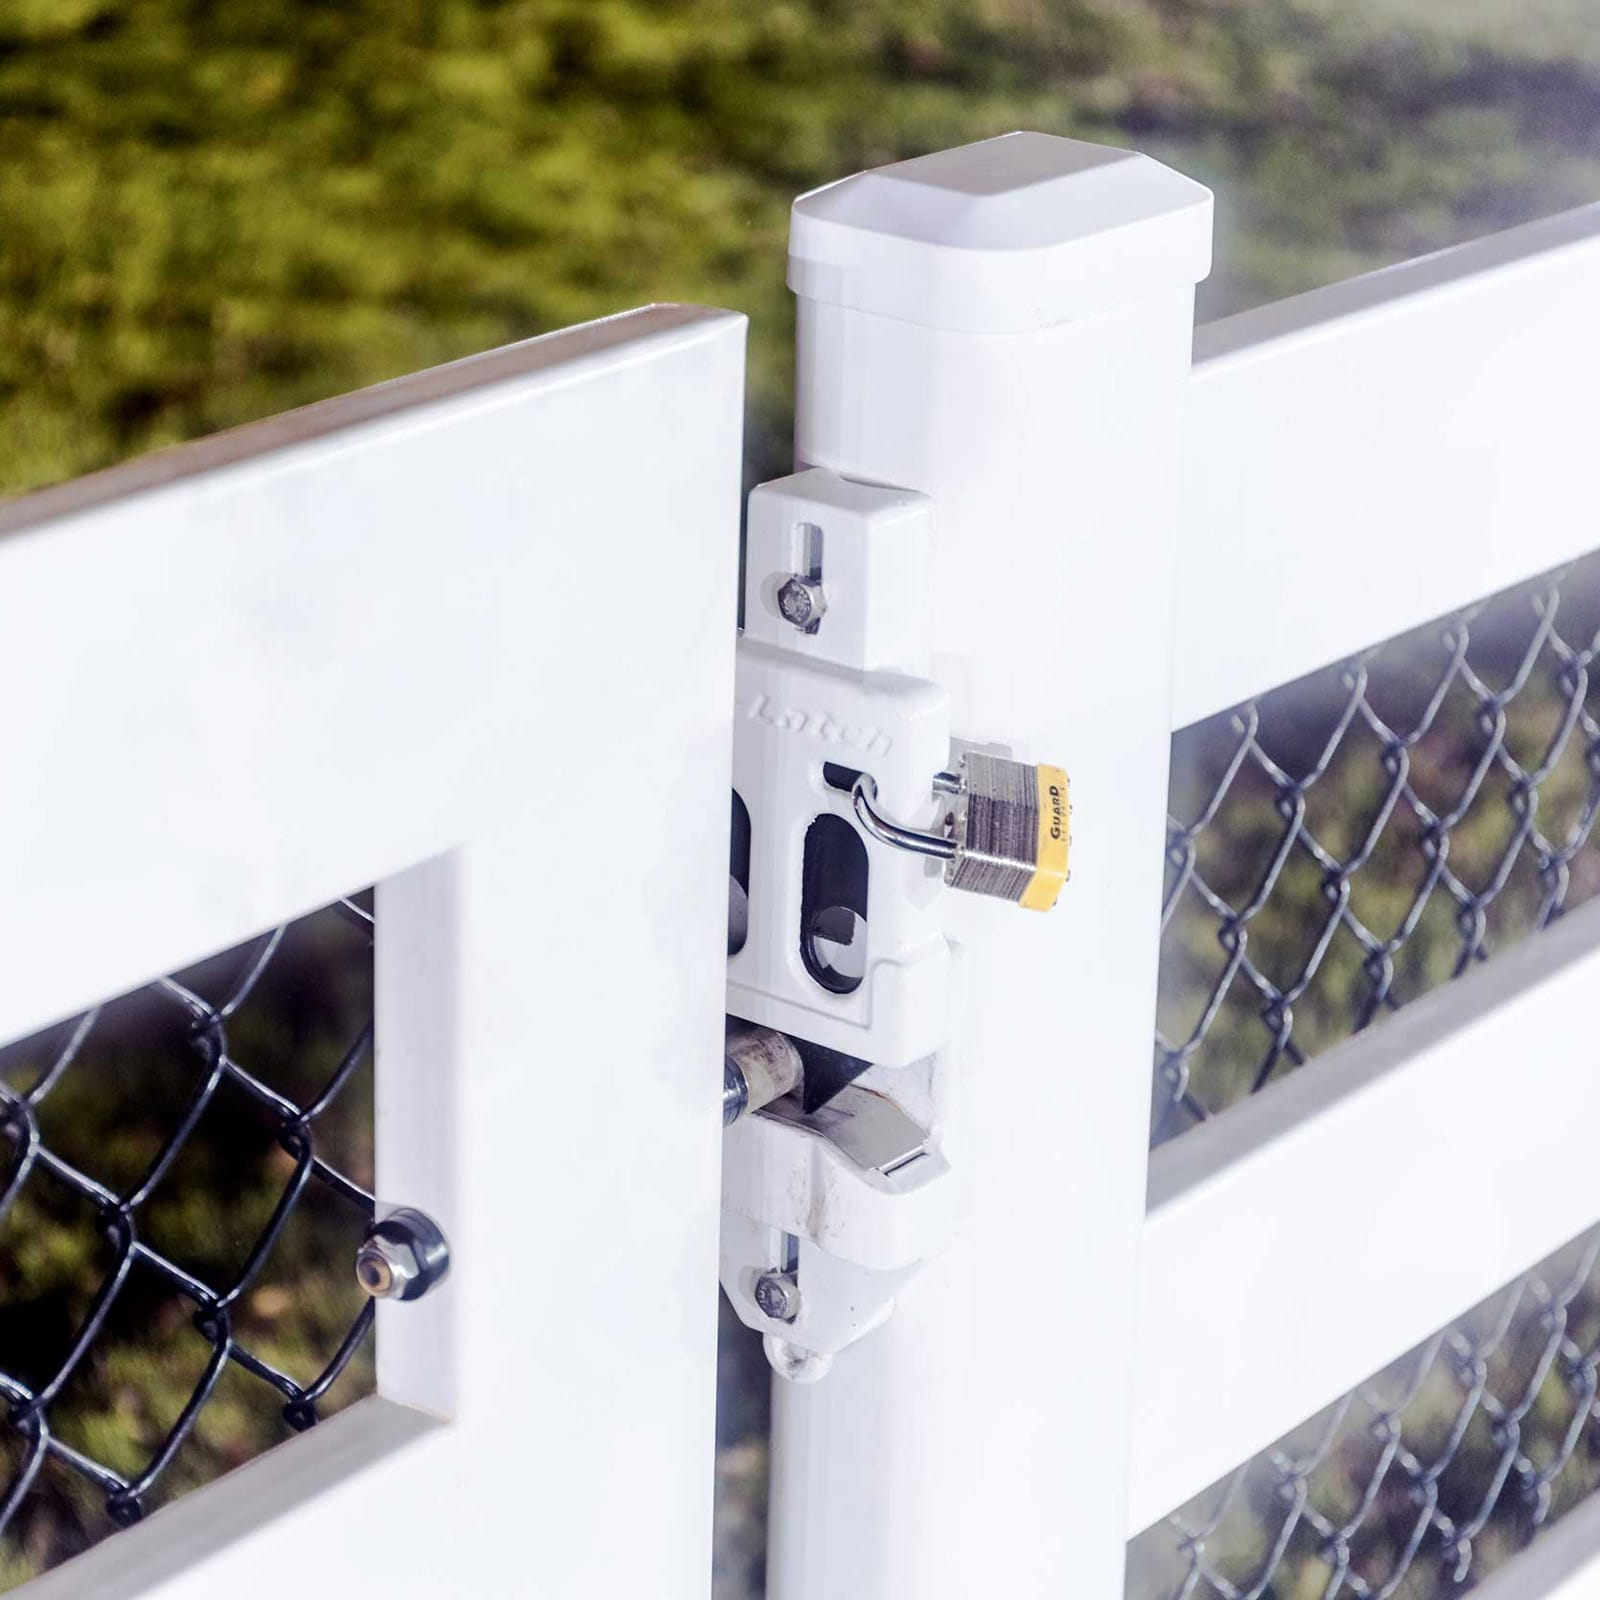 Close up picture of the Buckley Fence EZ-latch